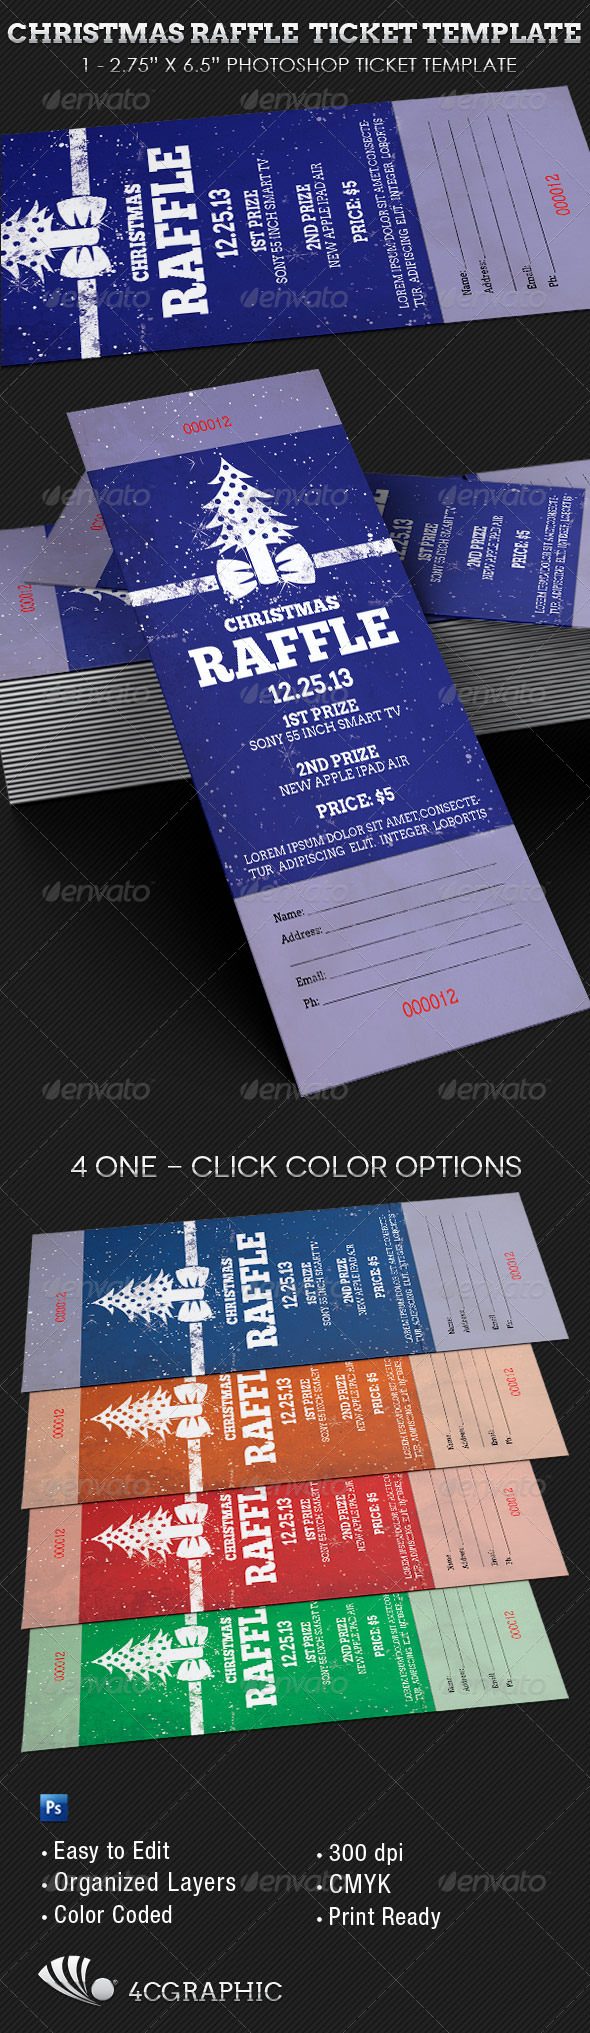 Christmas Raffle Ticket Template  - Events Flyers